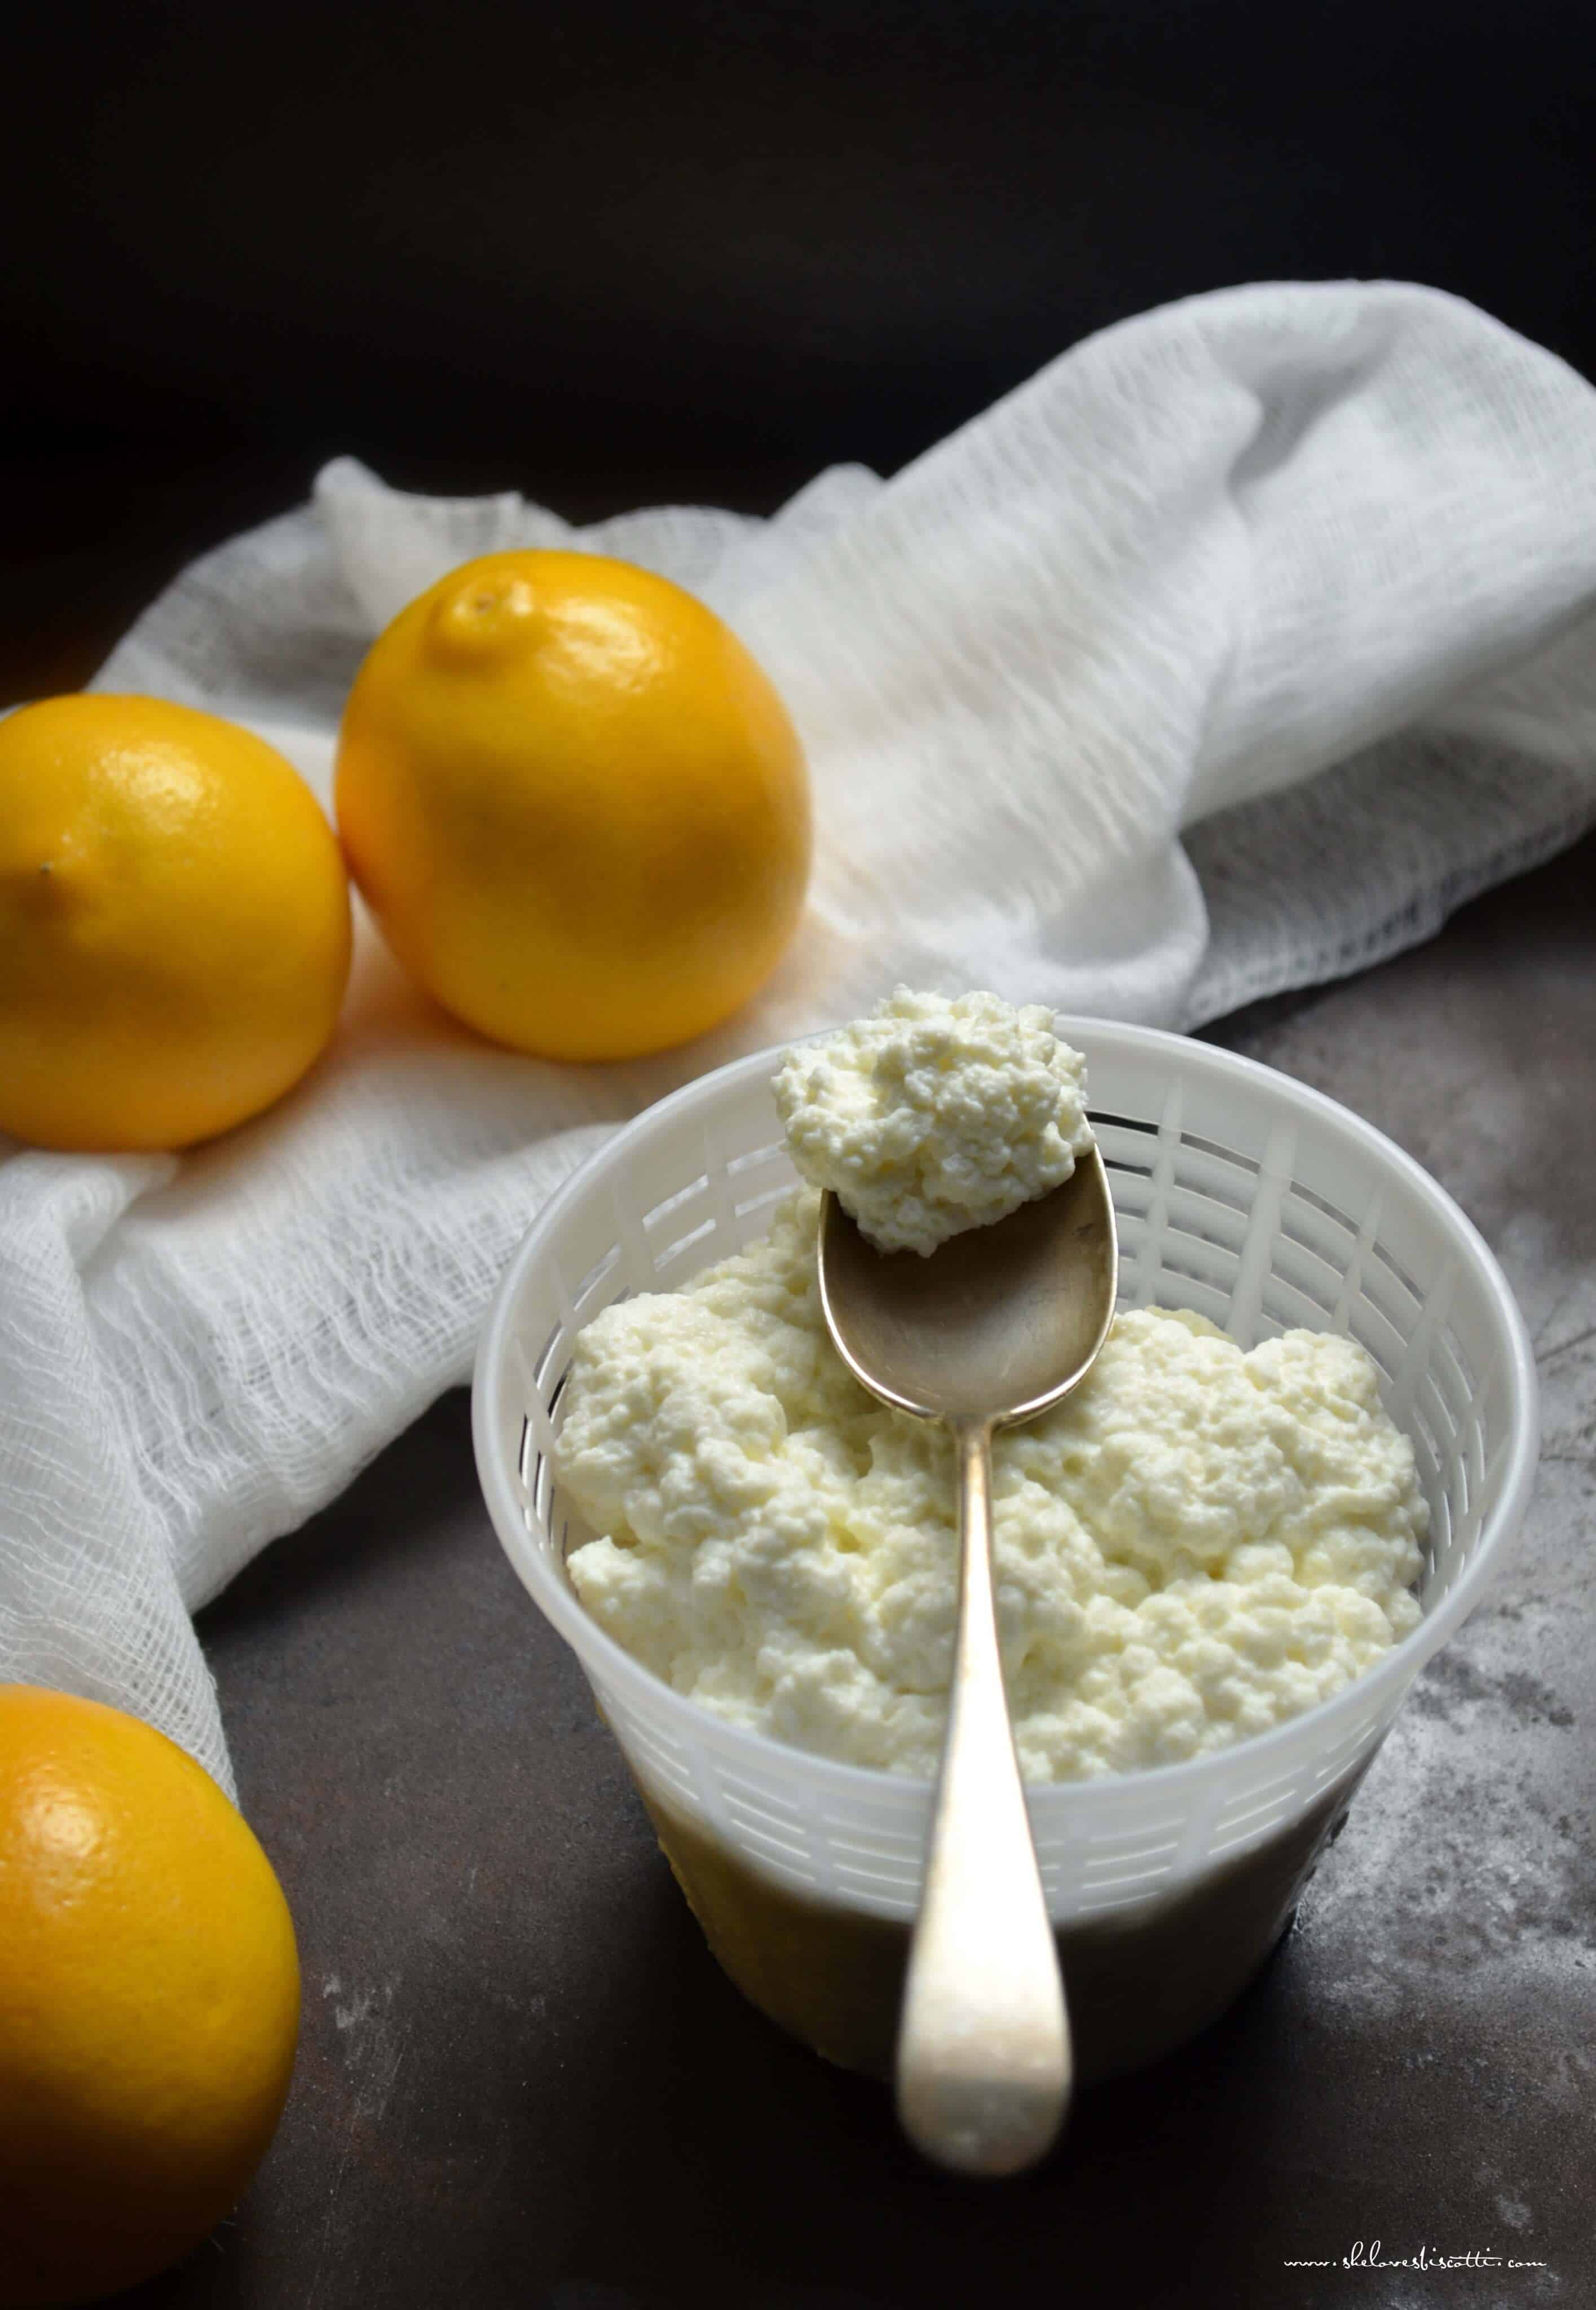 Homemade Ricotta Cheese: Only 3